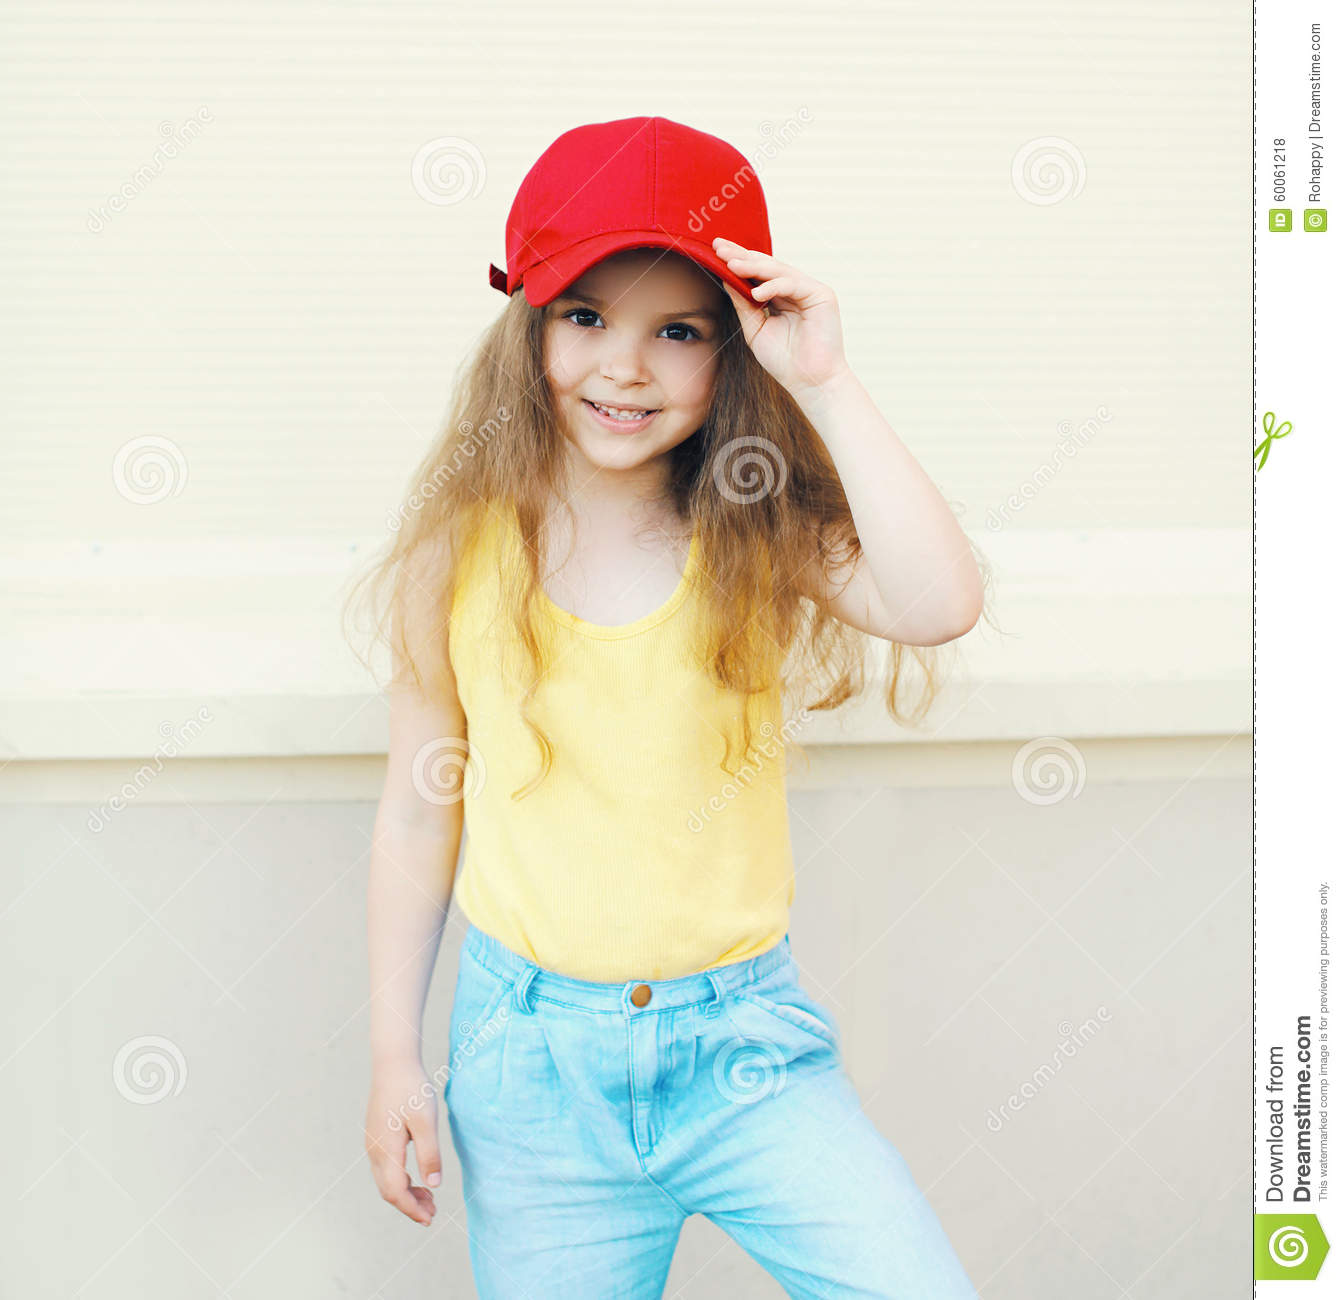 stylish little cute girl child wearing a cap stock photo - image of